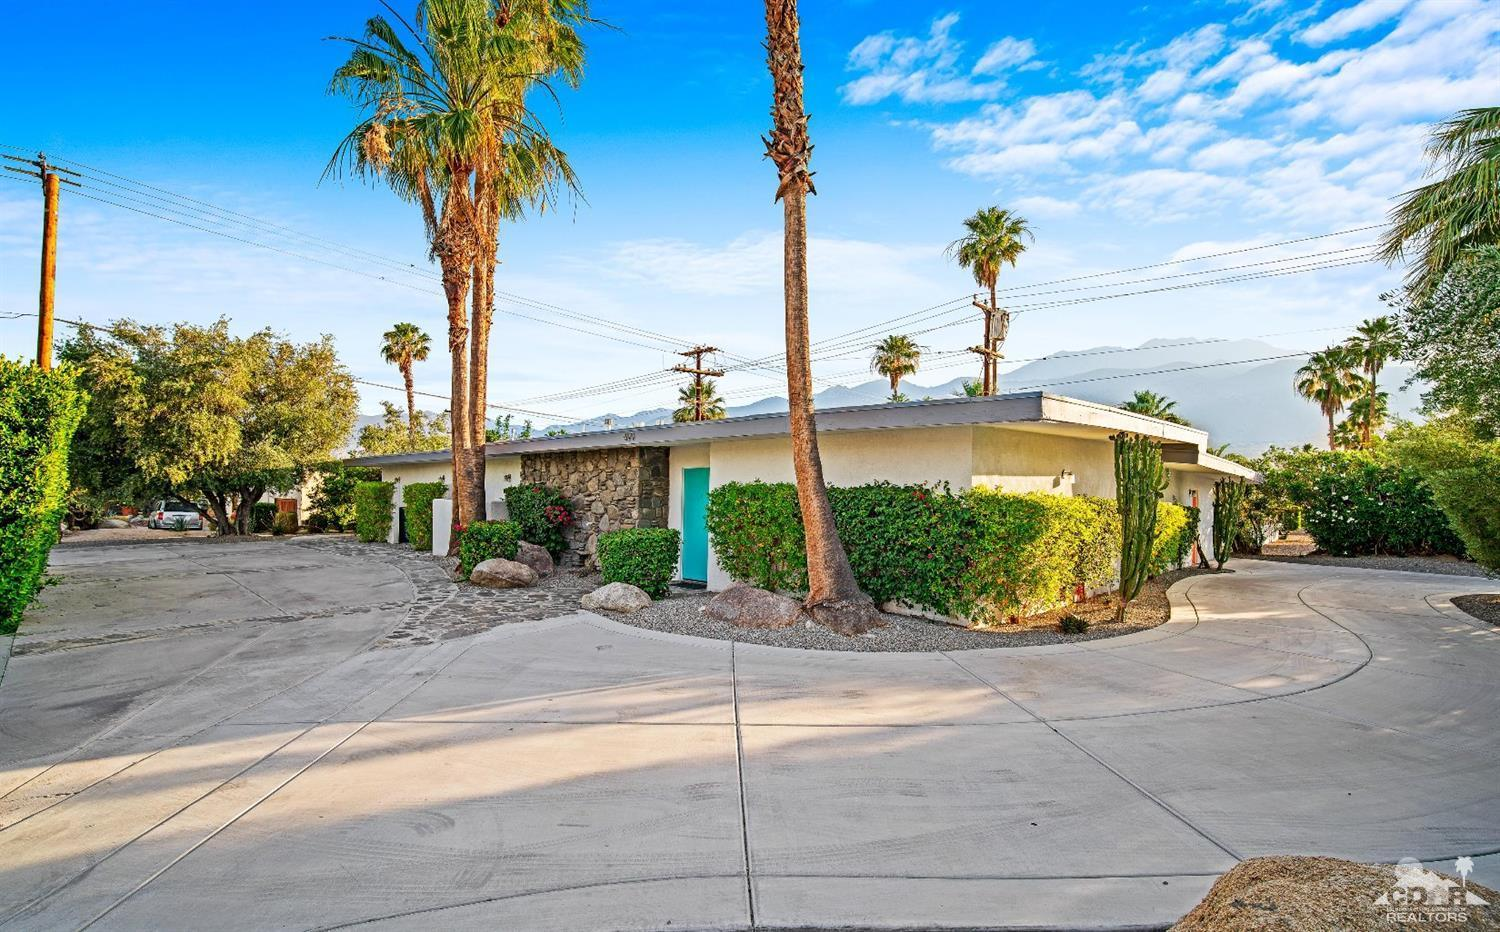 499 N Farrell Drive, Palm Springs, California 92262, 3 Bedrooms Bedrooms, ,4 BathroomsBathrooms,Residential,Sold,499 N Farrell Drive,219015753